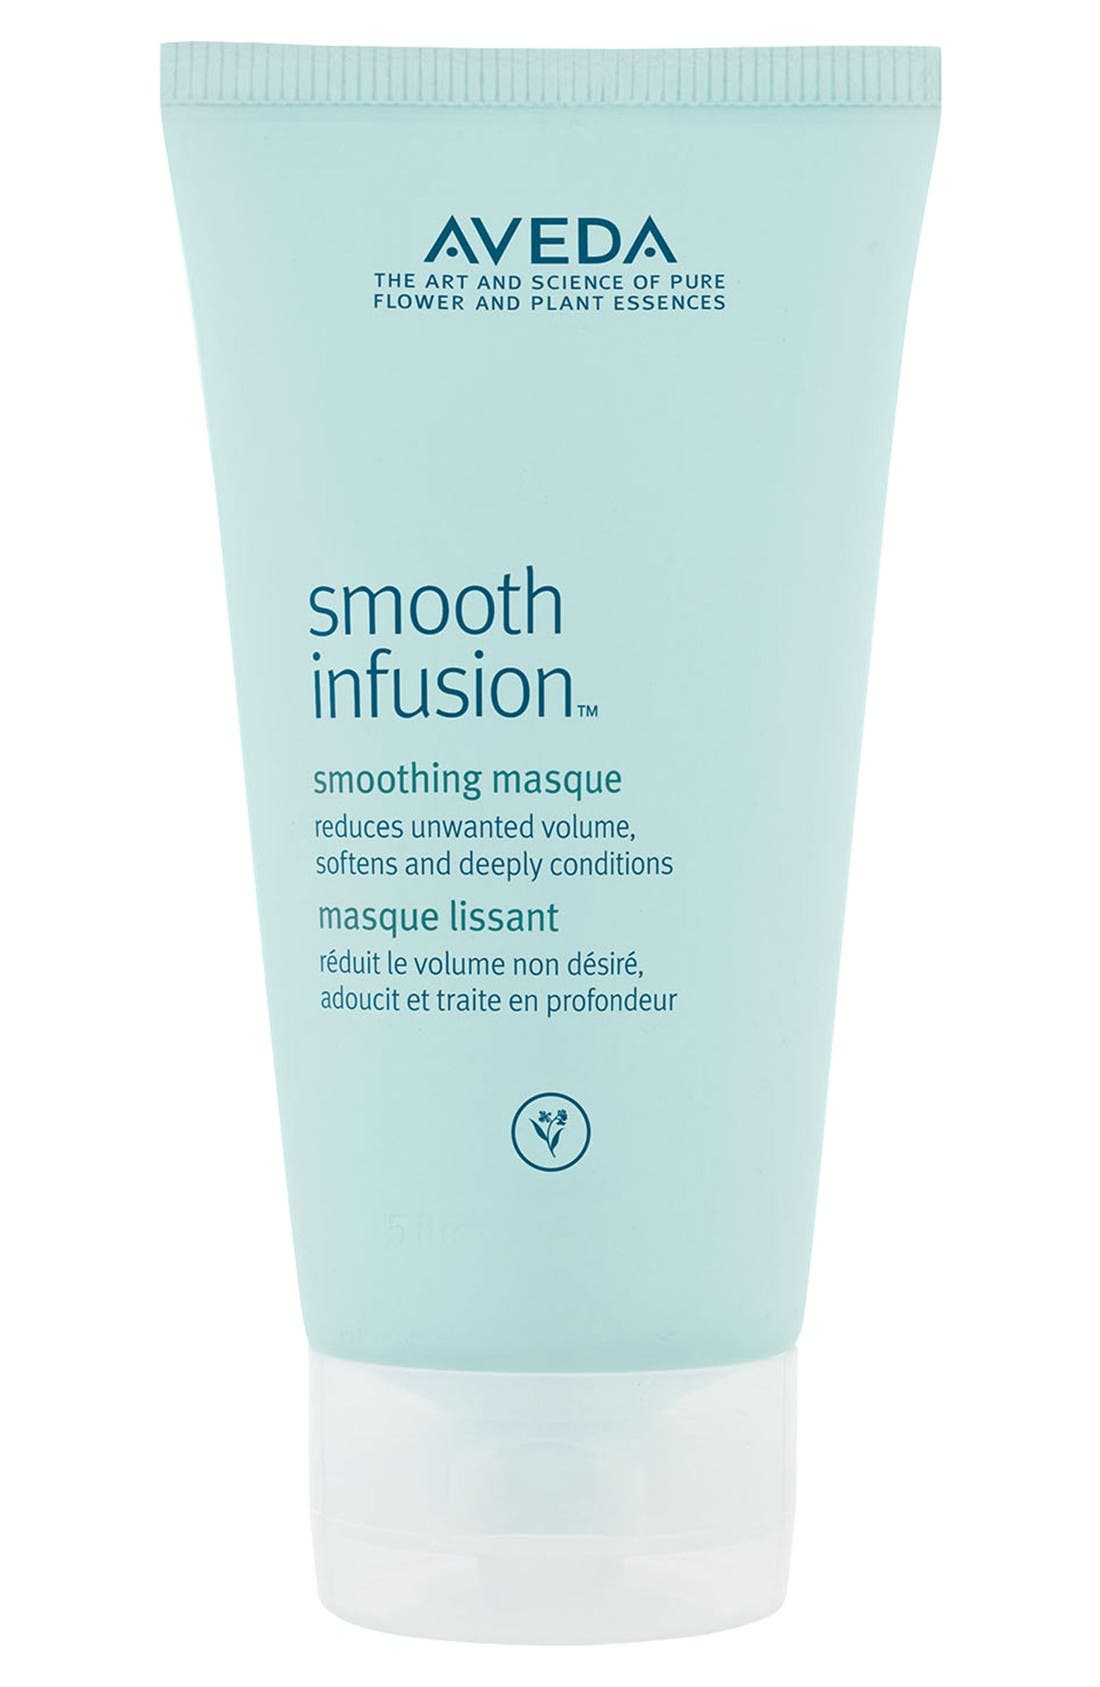 Aveda 'smooth infusion™' Smoothing Masque